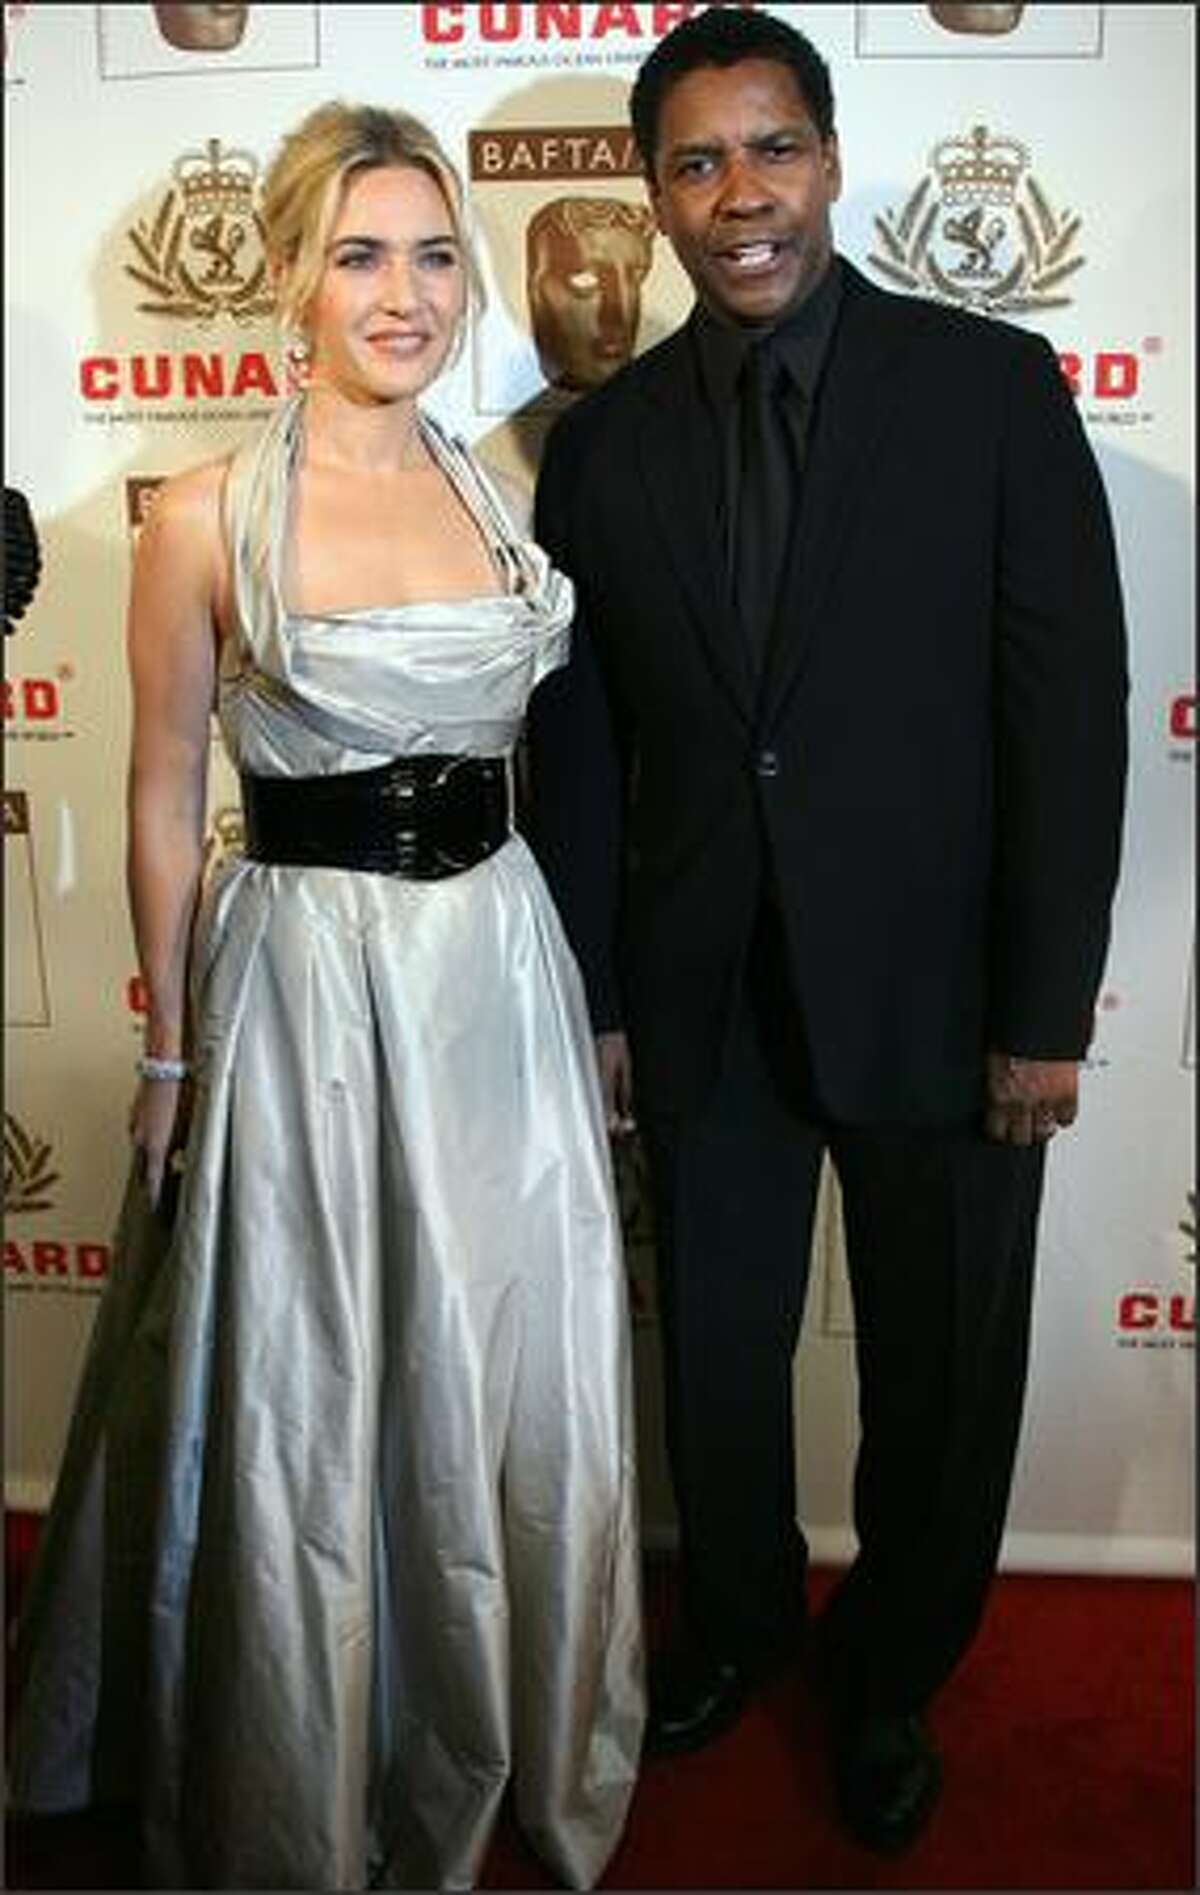 British actress Kate Winslet arrives with actor Denzel Washington at the British Academy of Film and Television Arts/Los Angeles (BAFTA/LA) Awards in Los Angeles, California.